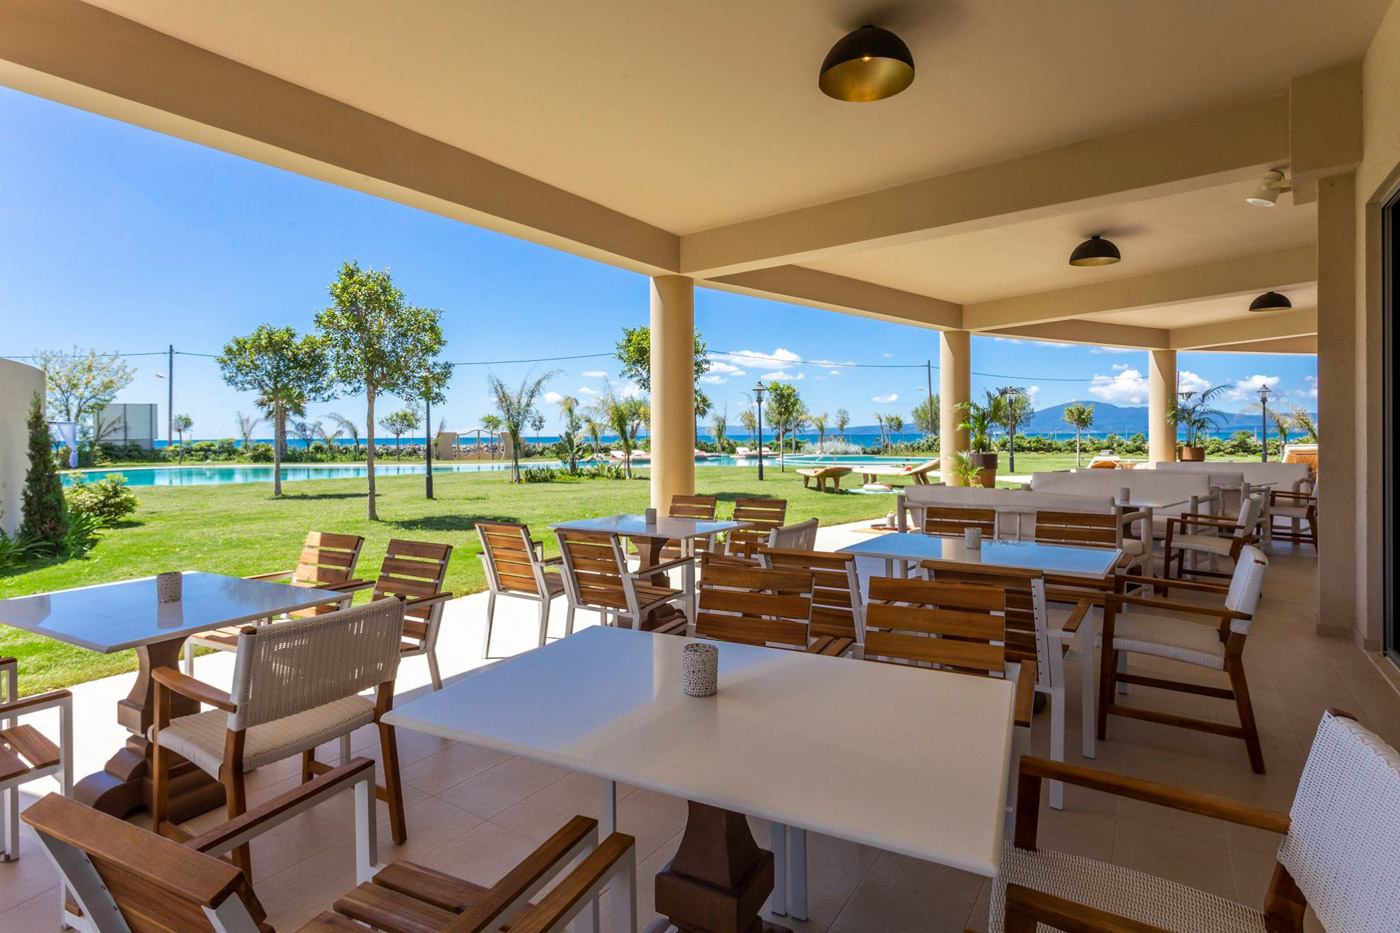 Elysian luxury hotel and spa Kalamata restaurant garden